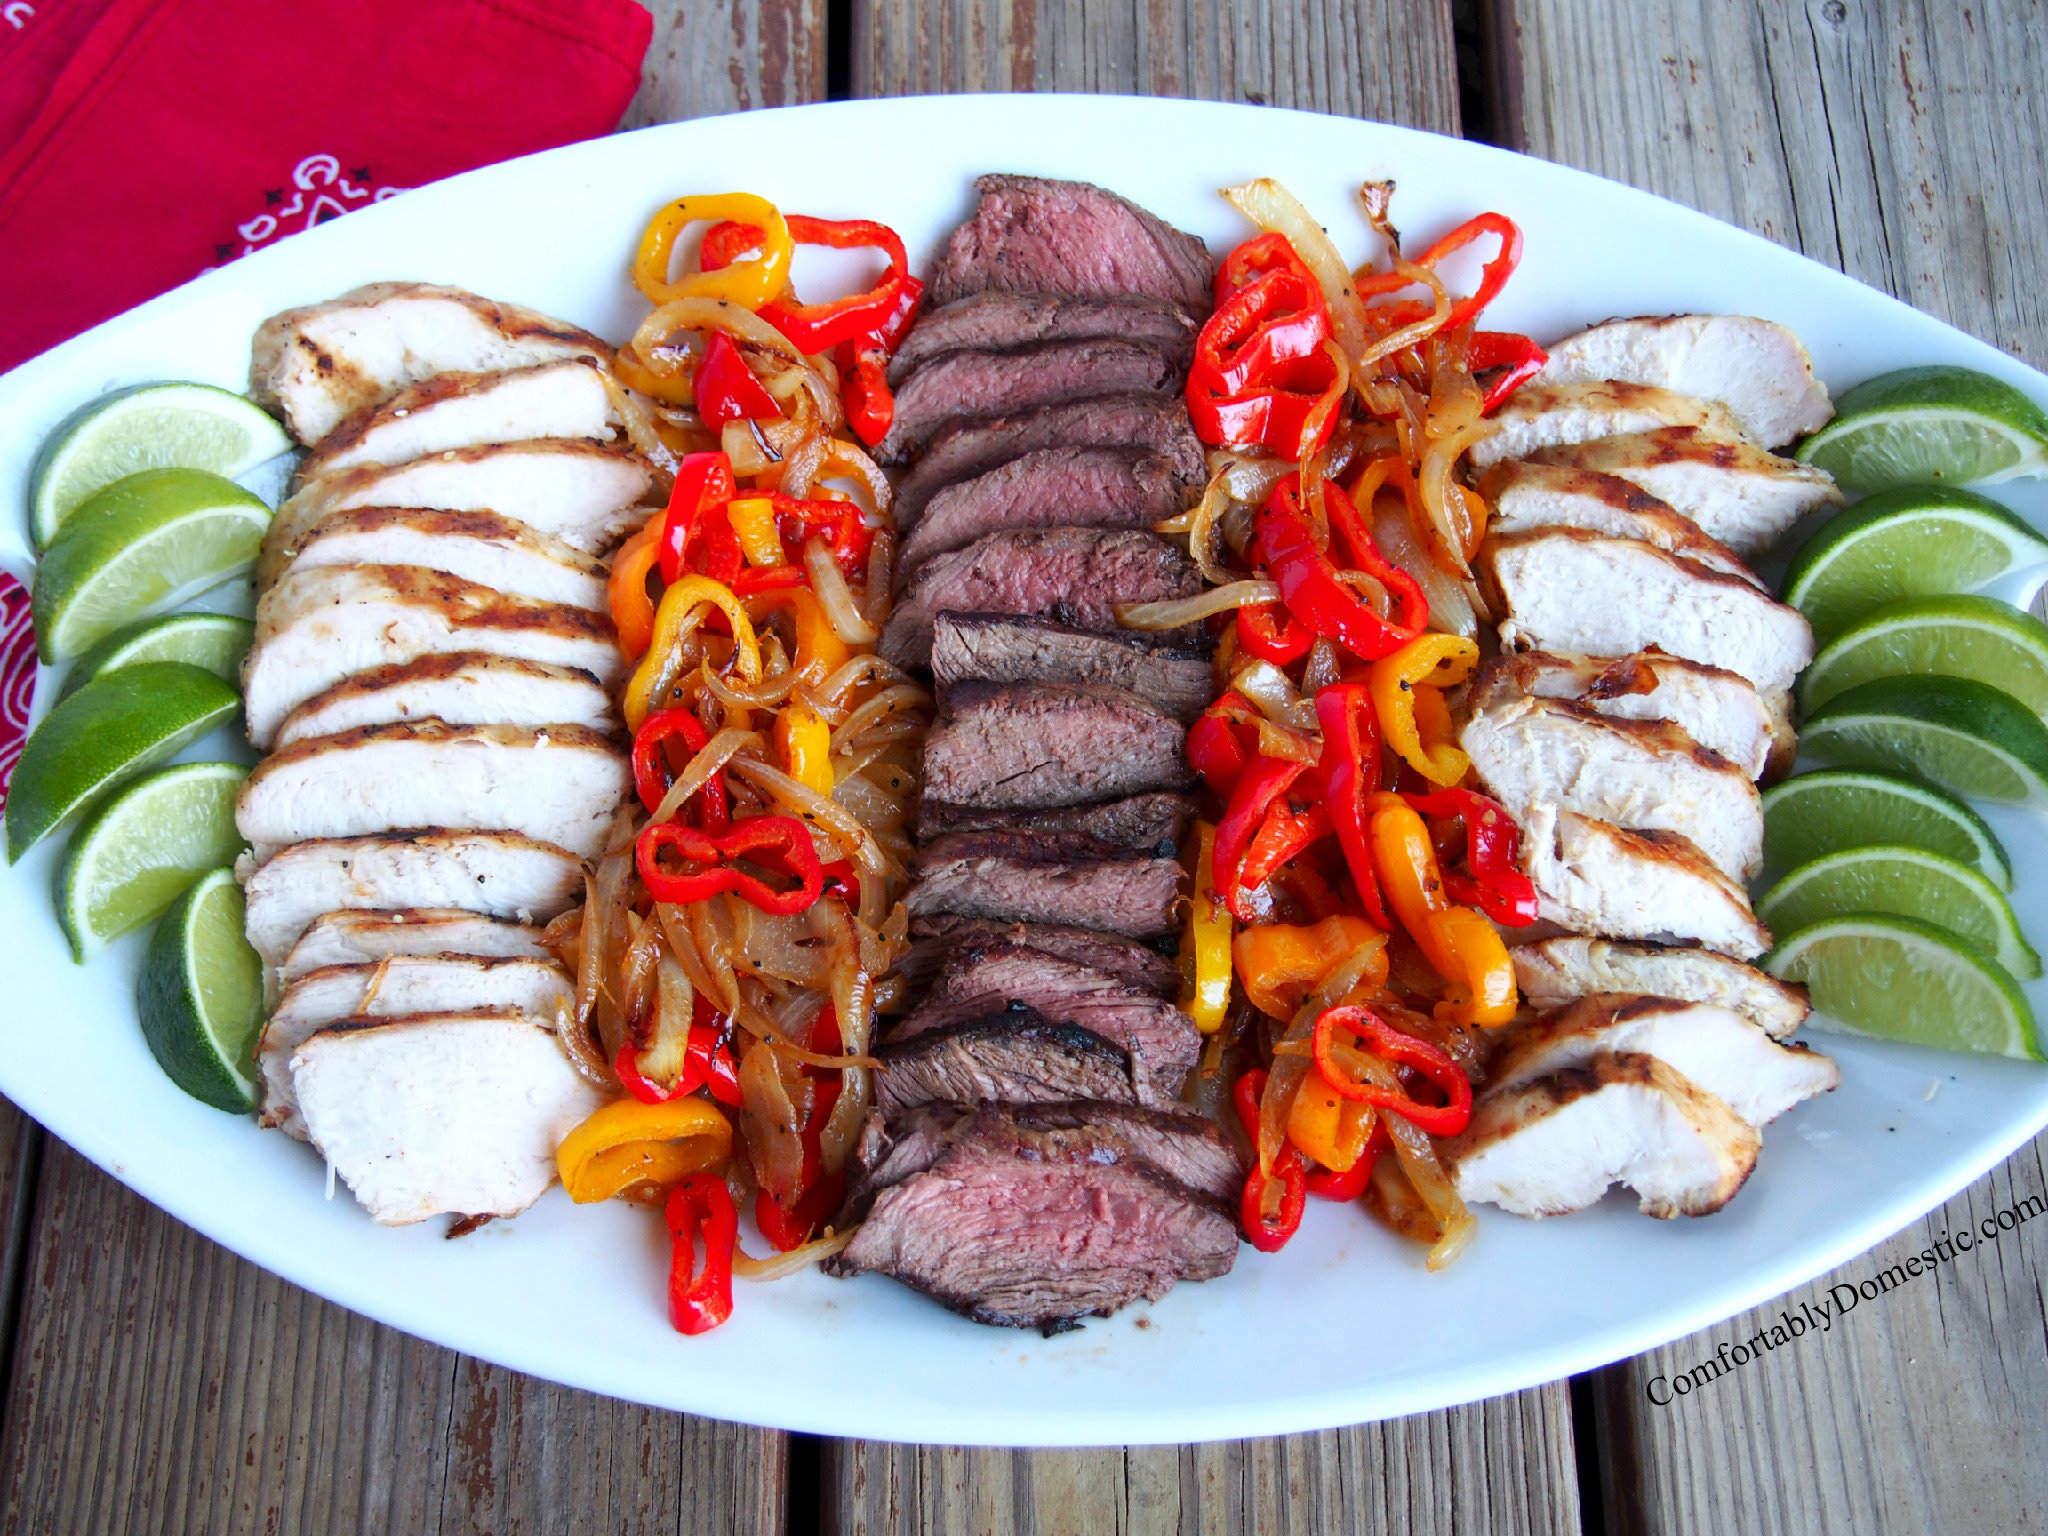 Simple Chicken or Steak Fajitas | ComfortablyDomestic.com